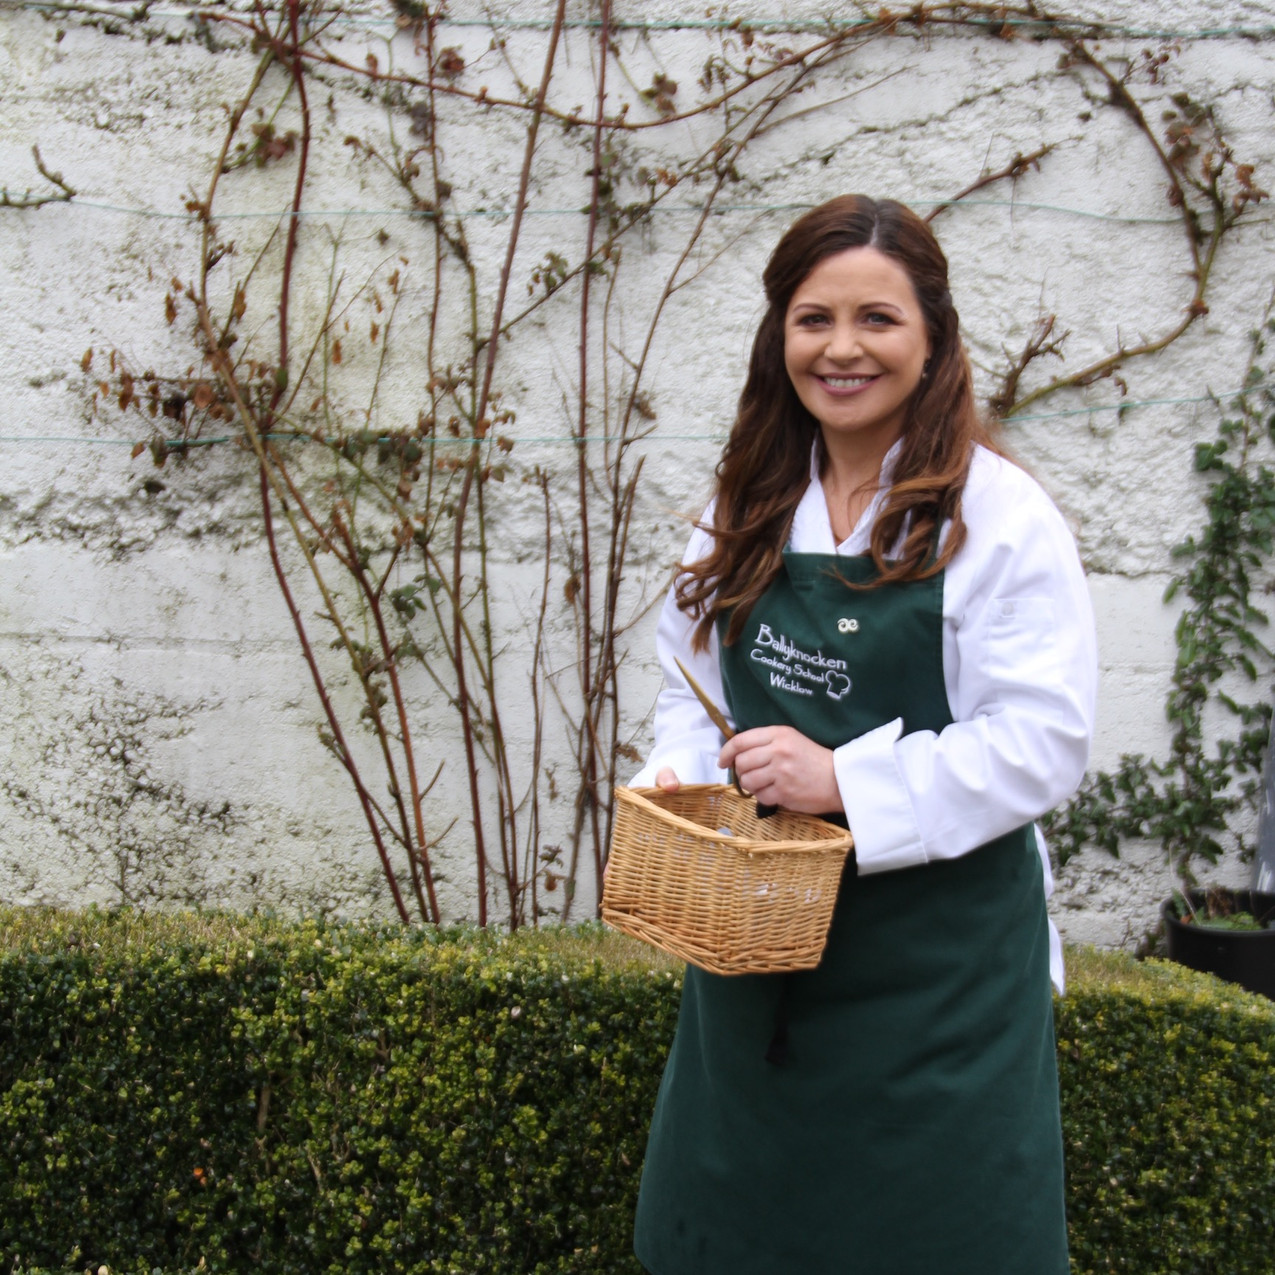 Catherine_Fulvio_Join_Force_s_with_Fáilte_Ireland_to_Highlightthe_Unique_Tastes_of_Ireland's_Ancient_East_2